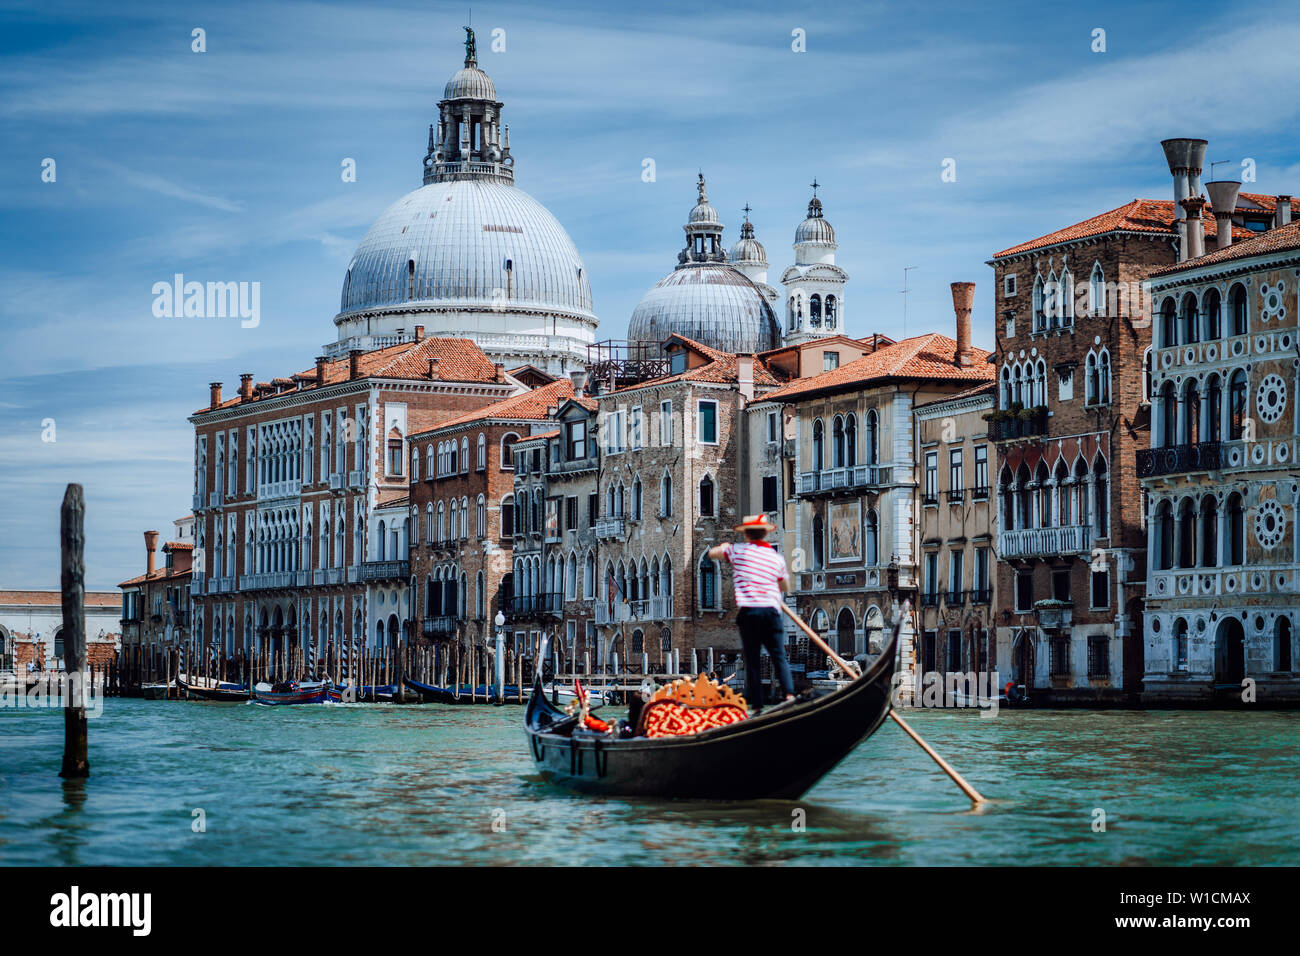 Traditional Gondola and gondolier on Canal Grande with Basilica di Santa Maria della Salute in the background in Venice, Italy. Summer vacation city Stock Photo